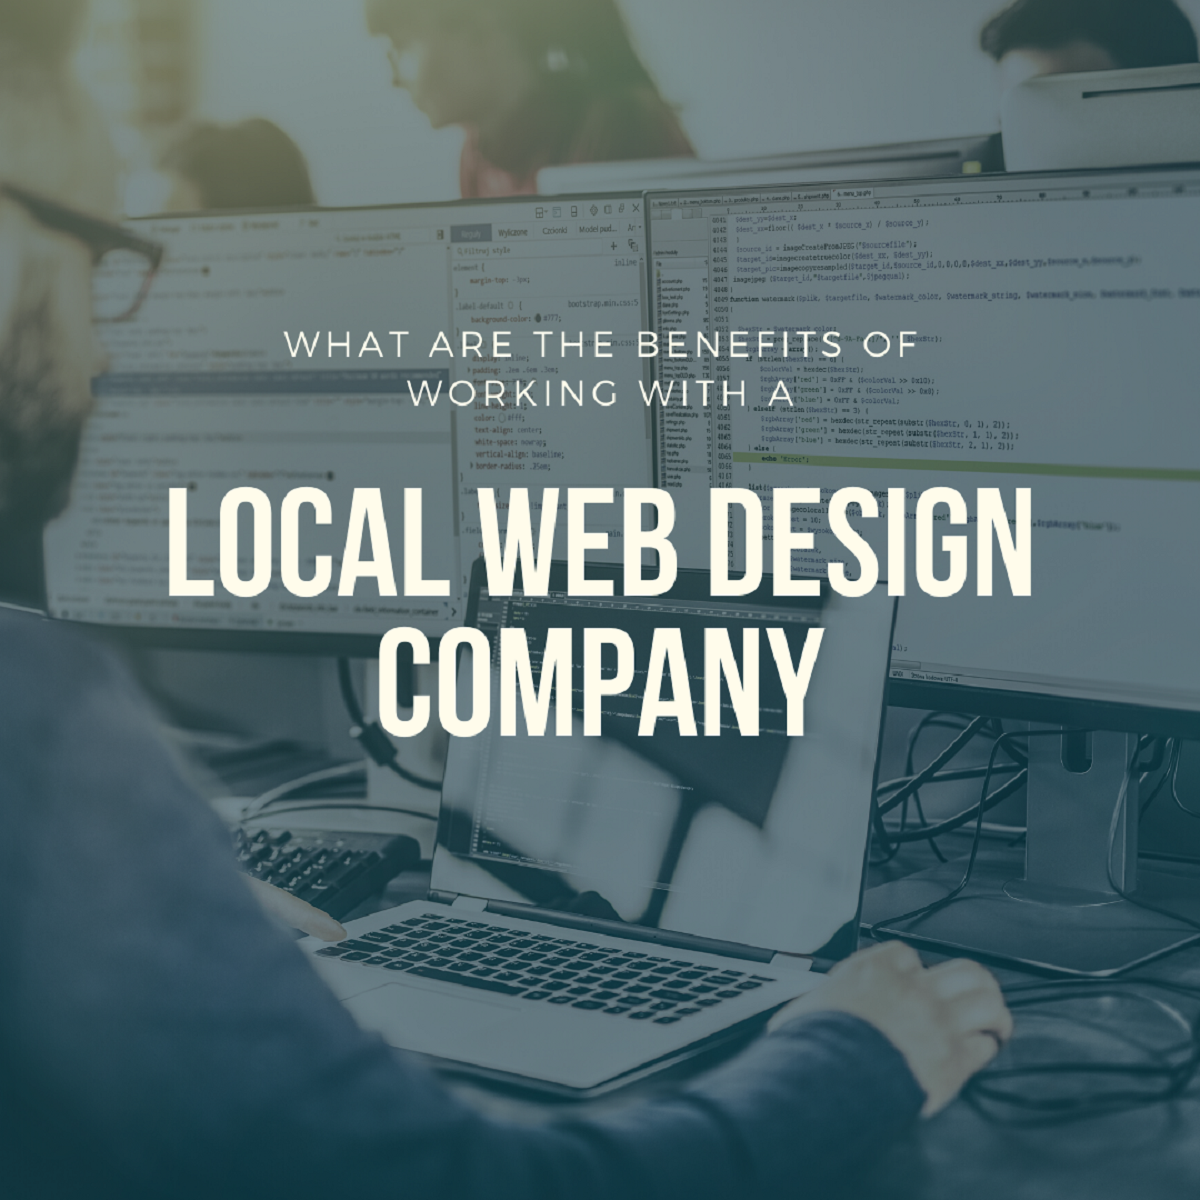 What Are The Benefits of Working With A Local Web Design Company